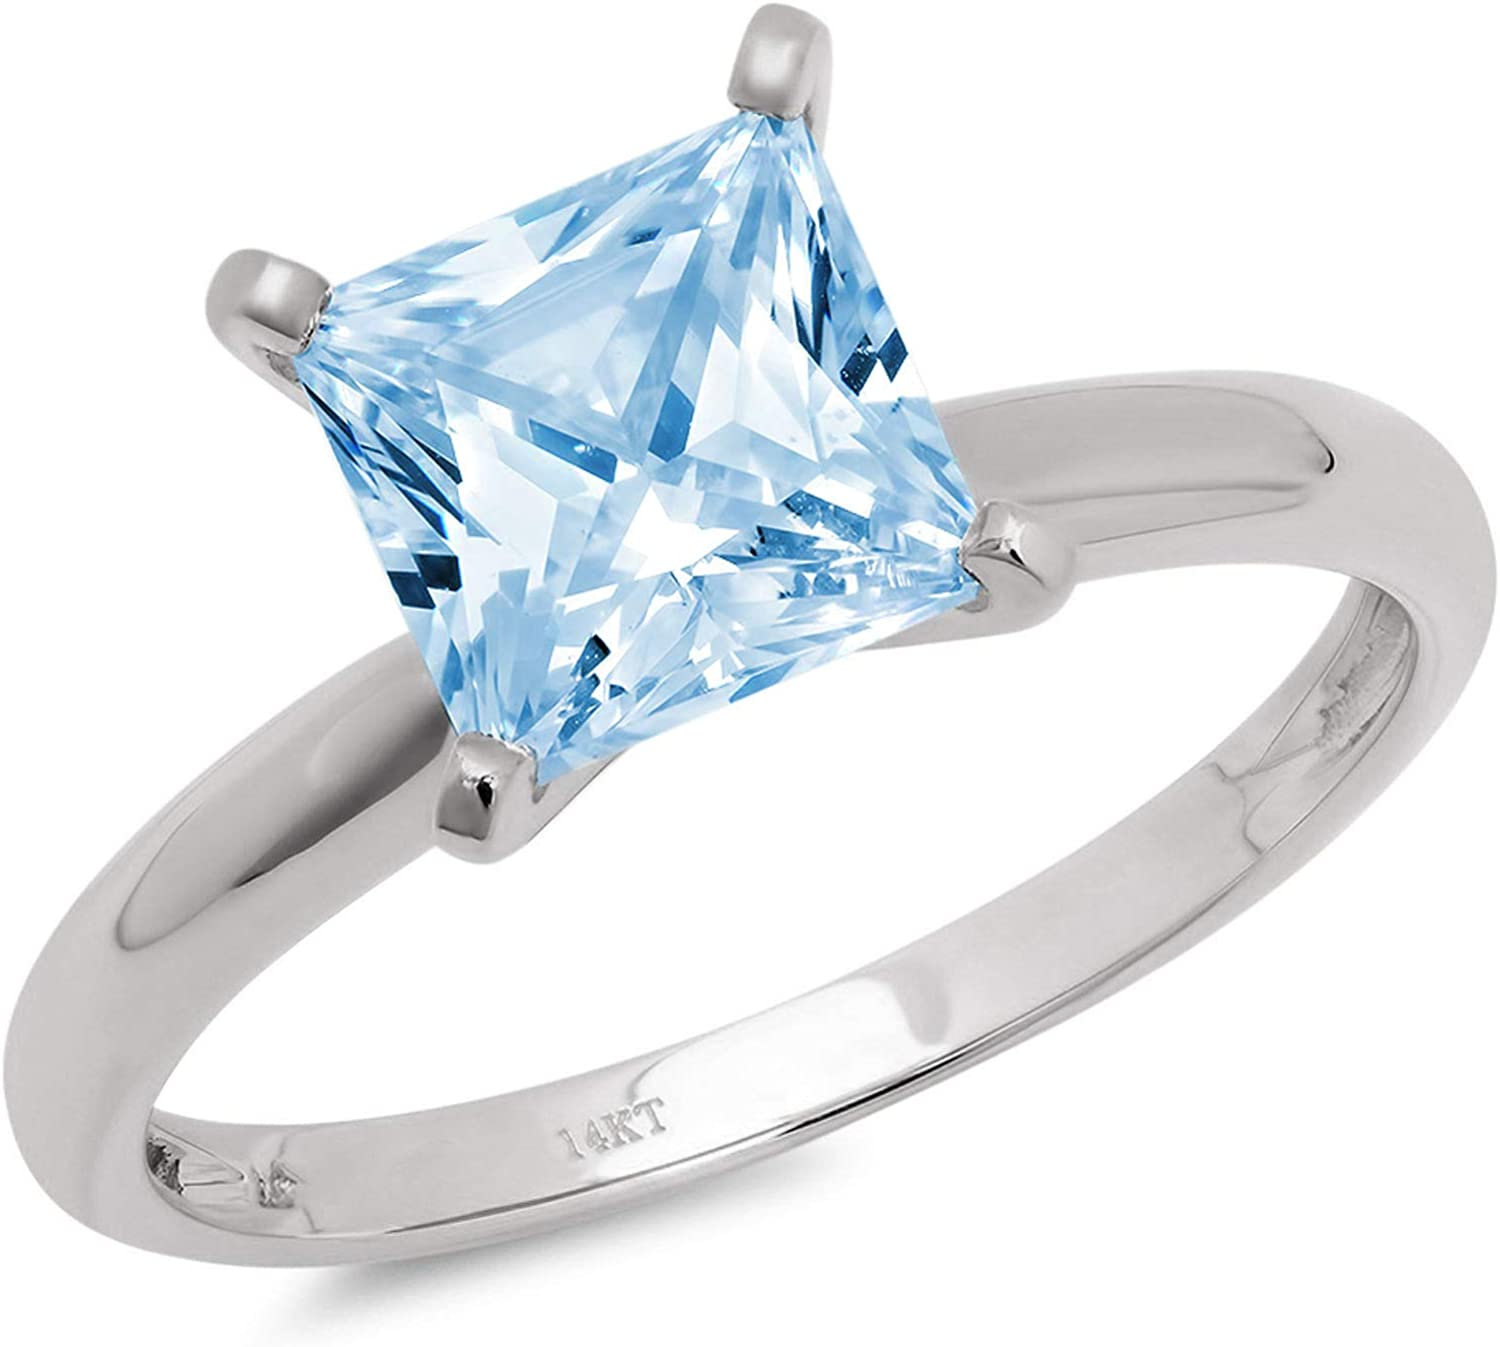 0.9ct Brilliant Princess Cut Solitaire Natural Swiss Blue Topaz Ideal Classic 4-Prong Engagement Wedding Bridal Promise Anniversary Ring Solid 18k White Gold for Women